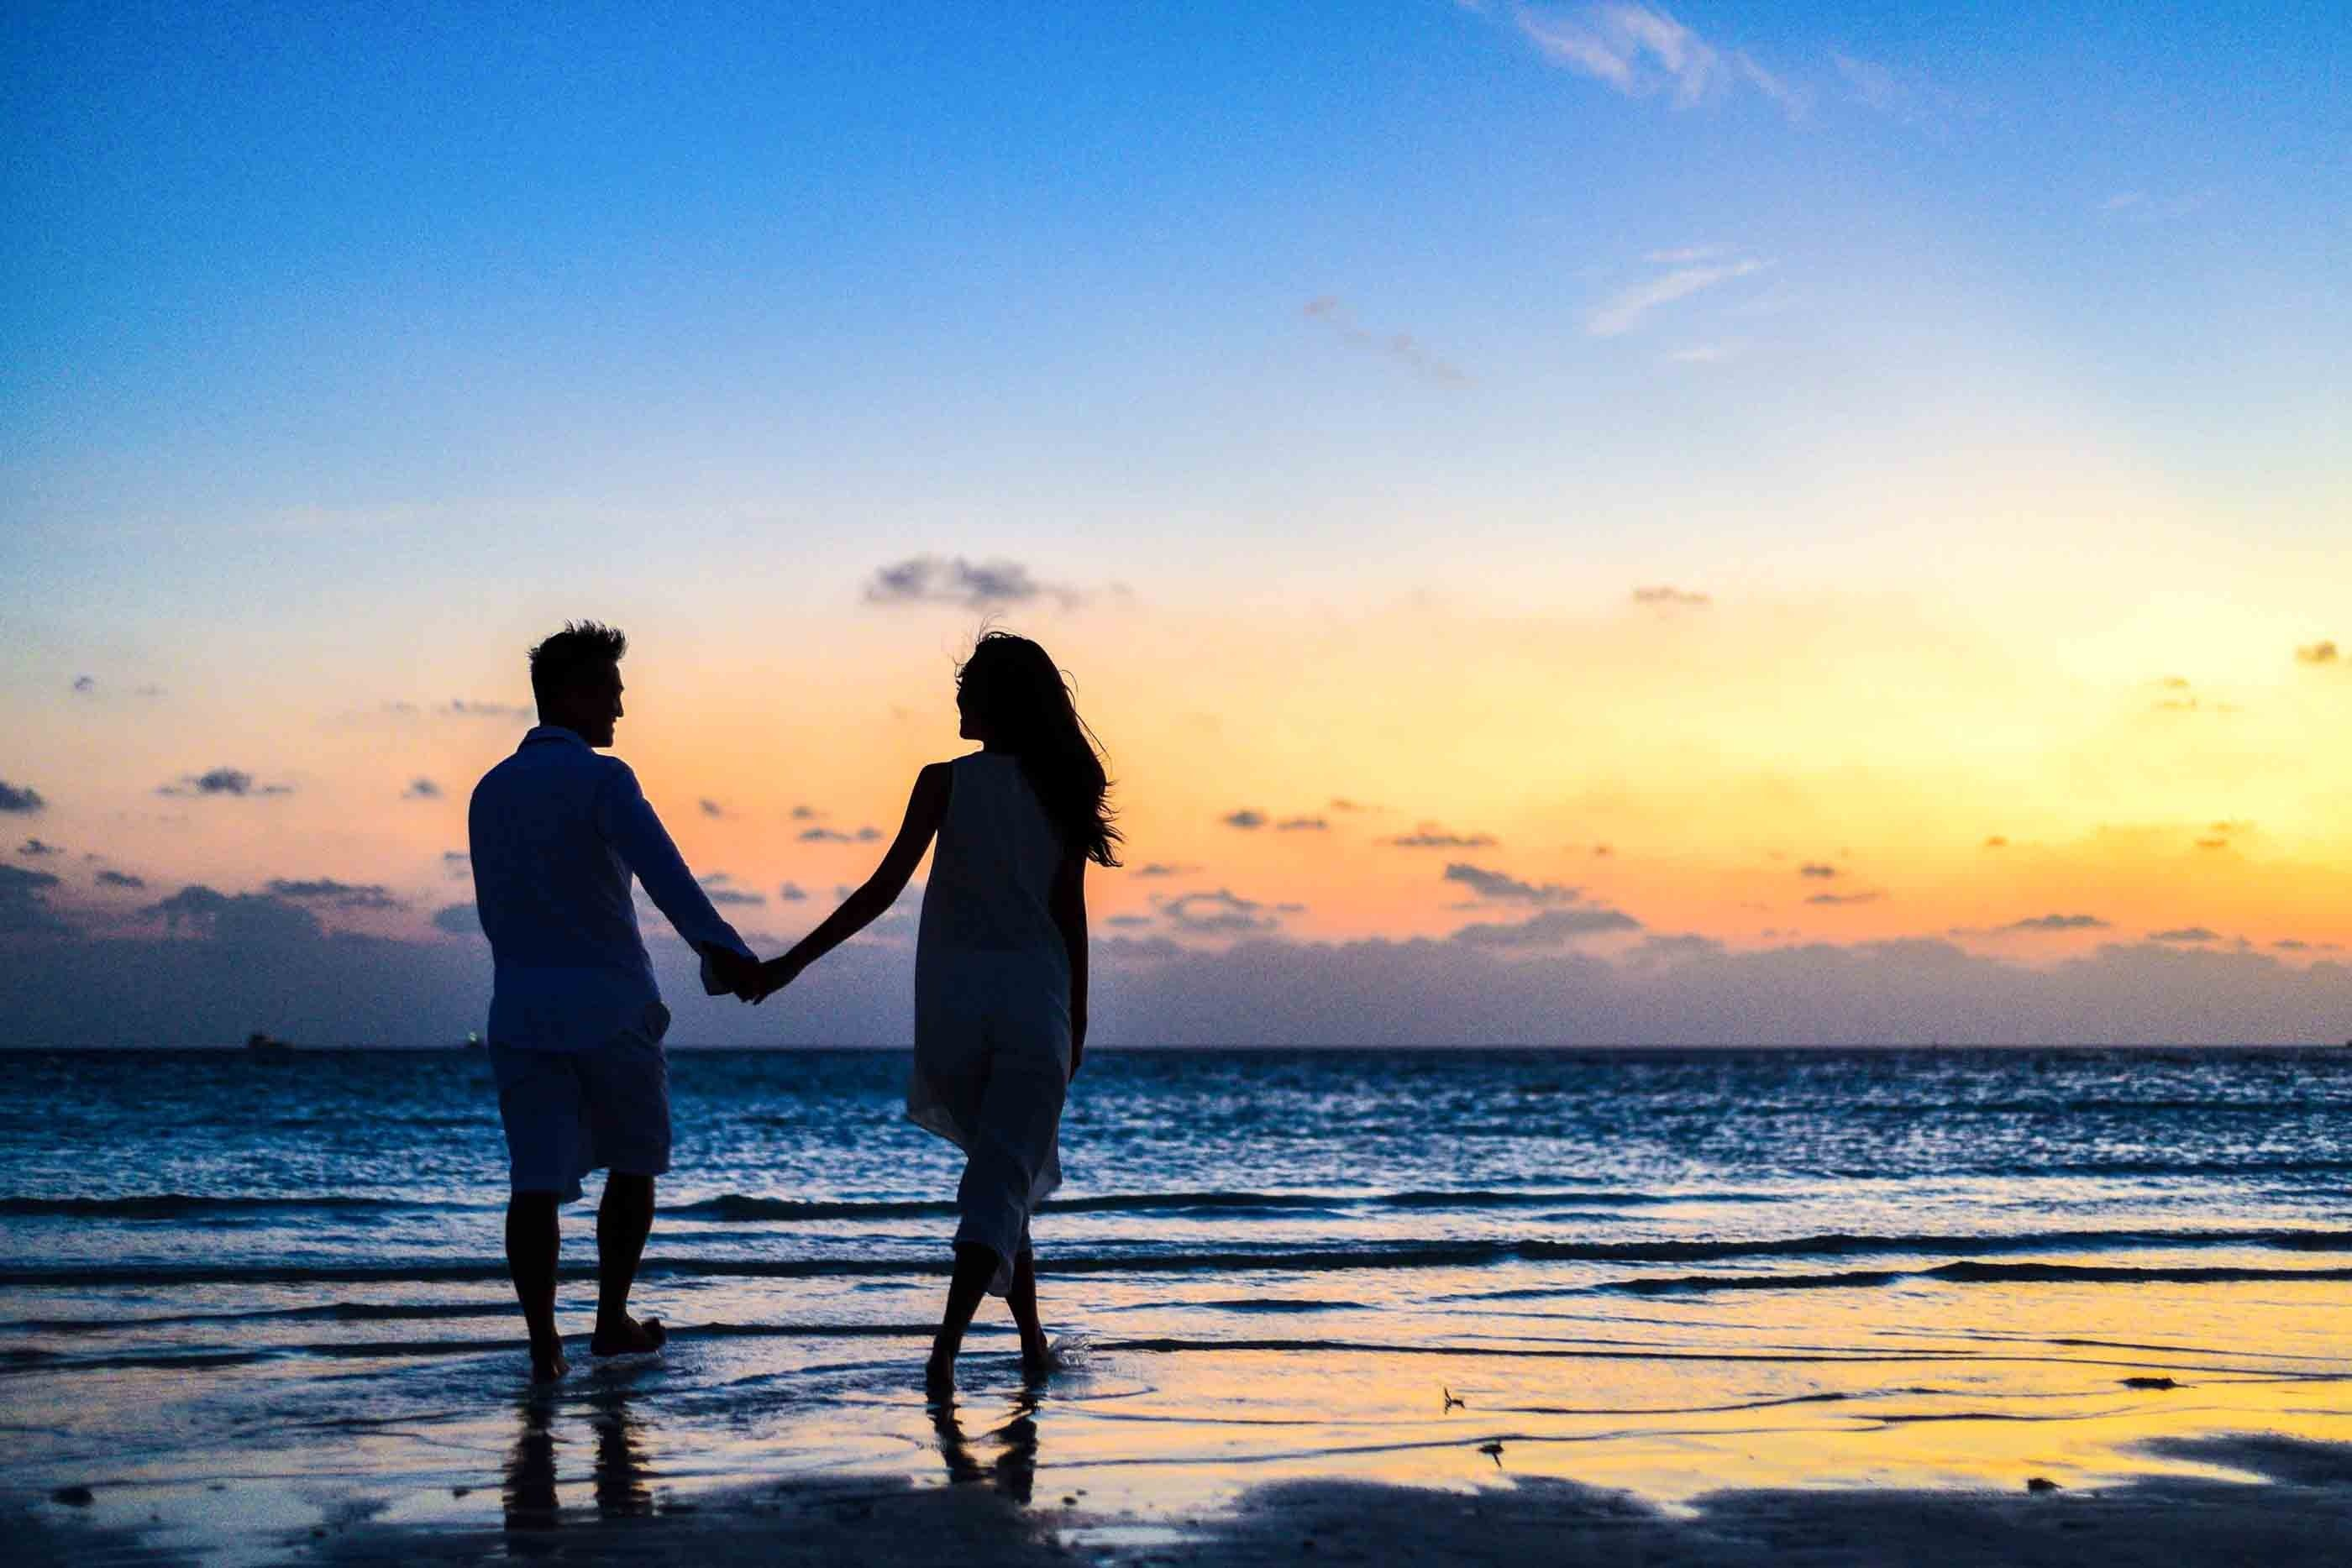 A man and a woman holding hands on a seashore during sunrise.   Photo: Pexels